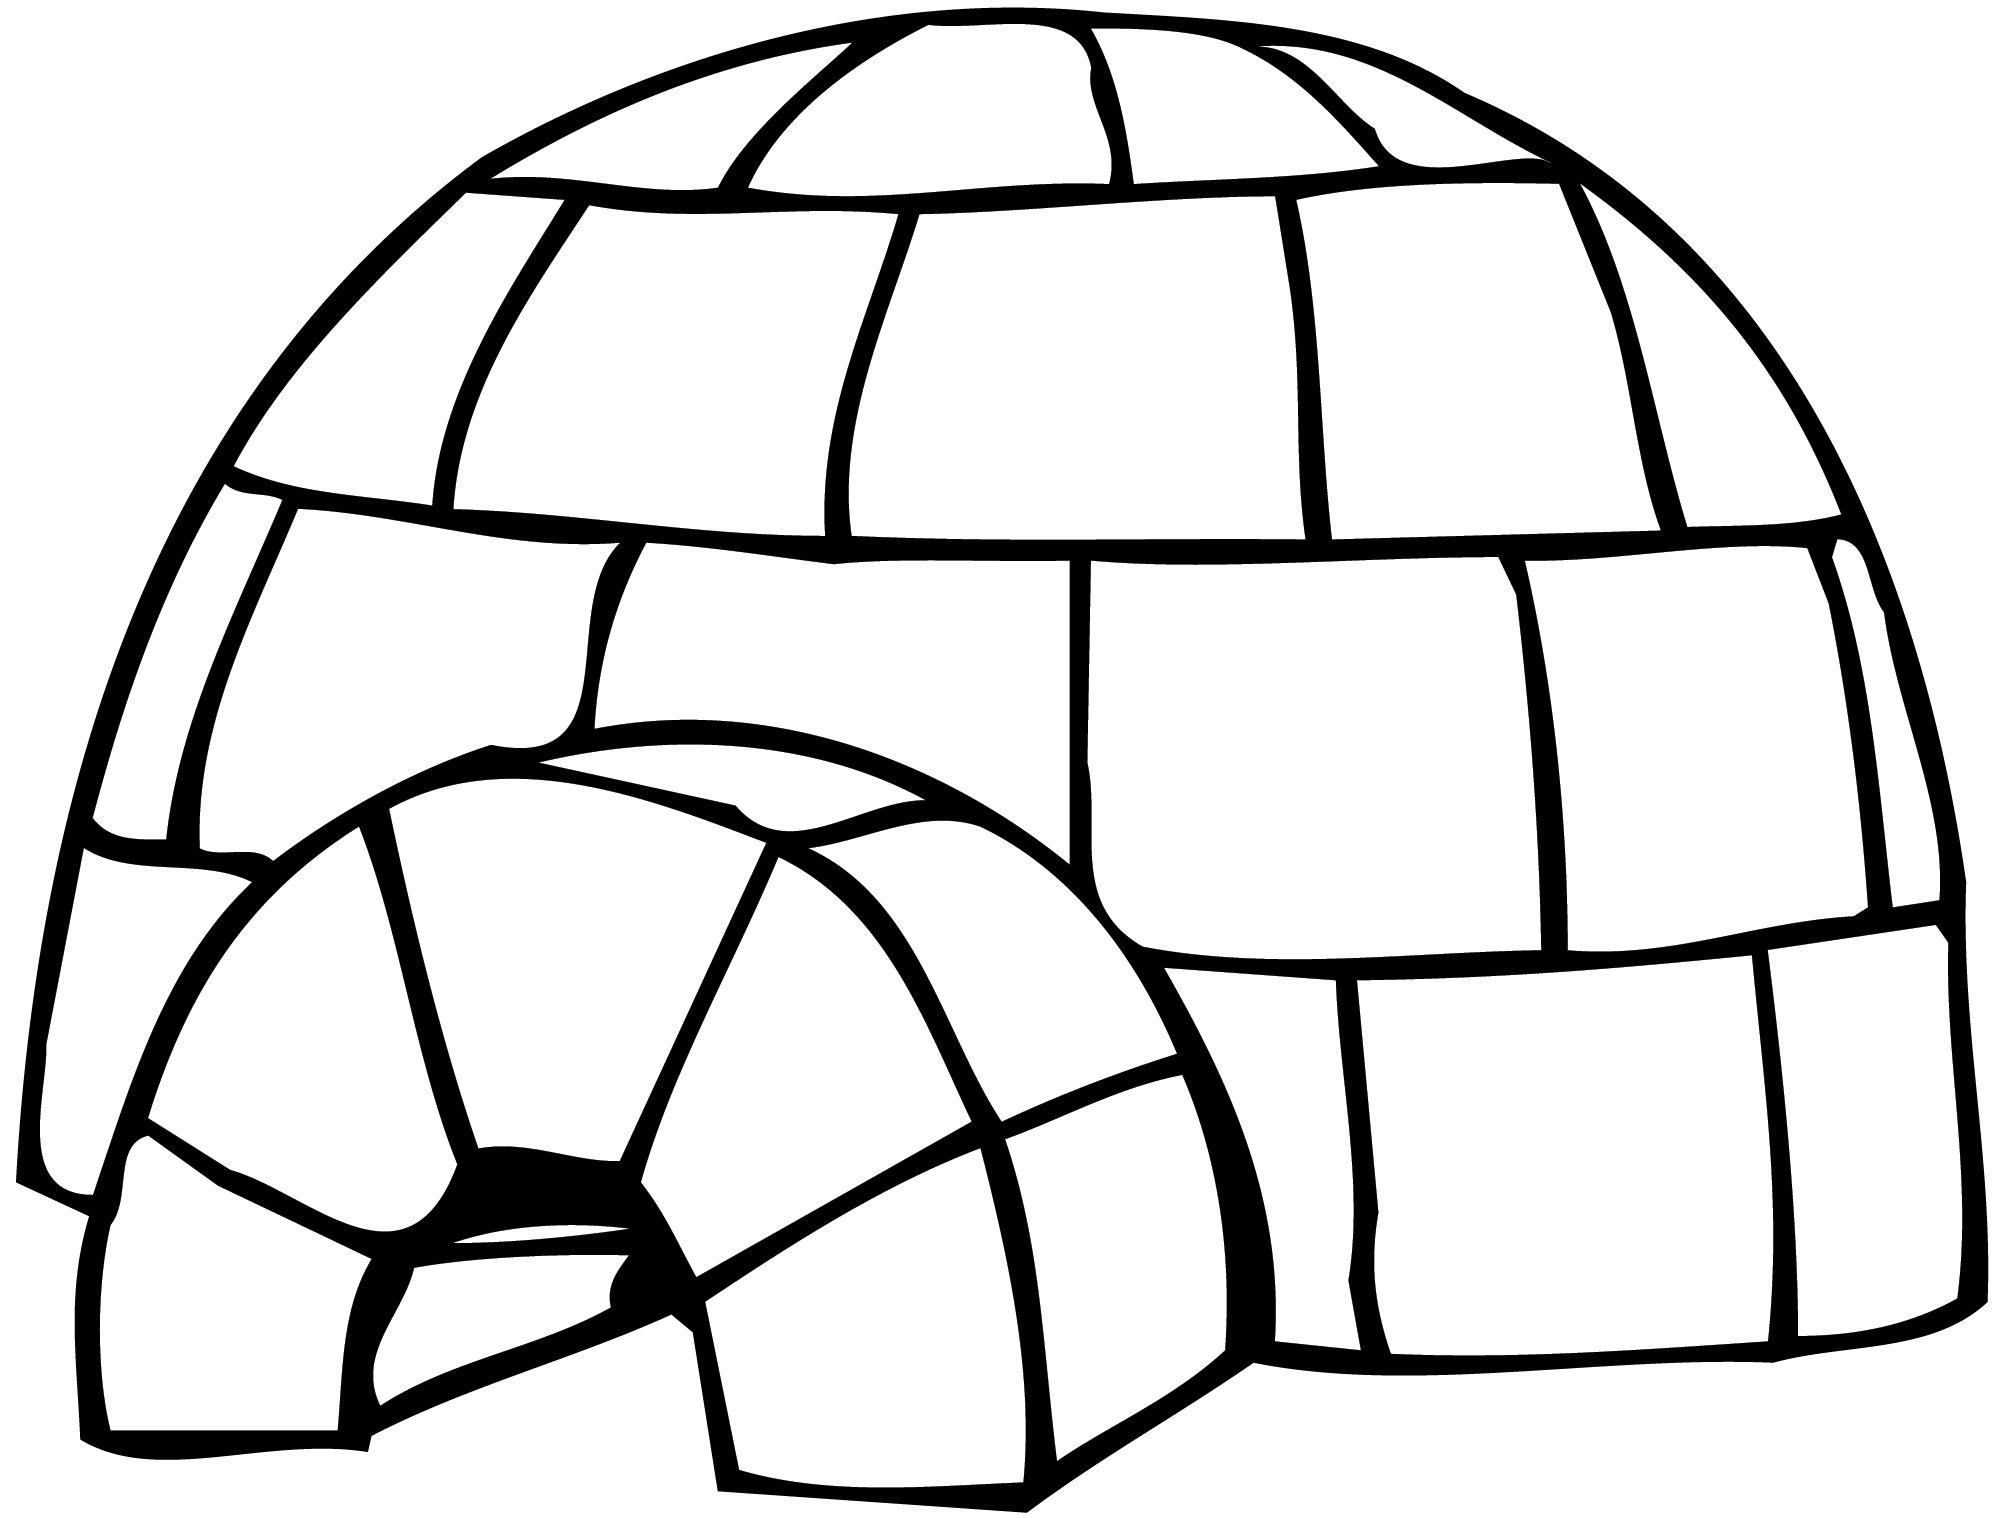 38 Coloring Page Igloo Penguin Coloring Pages Coloring Pages Igloo Craft